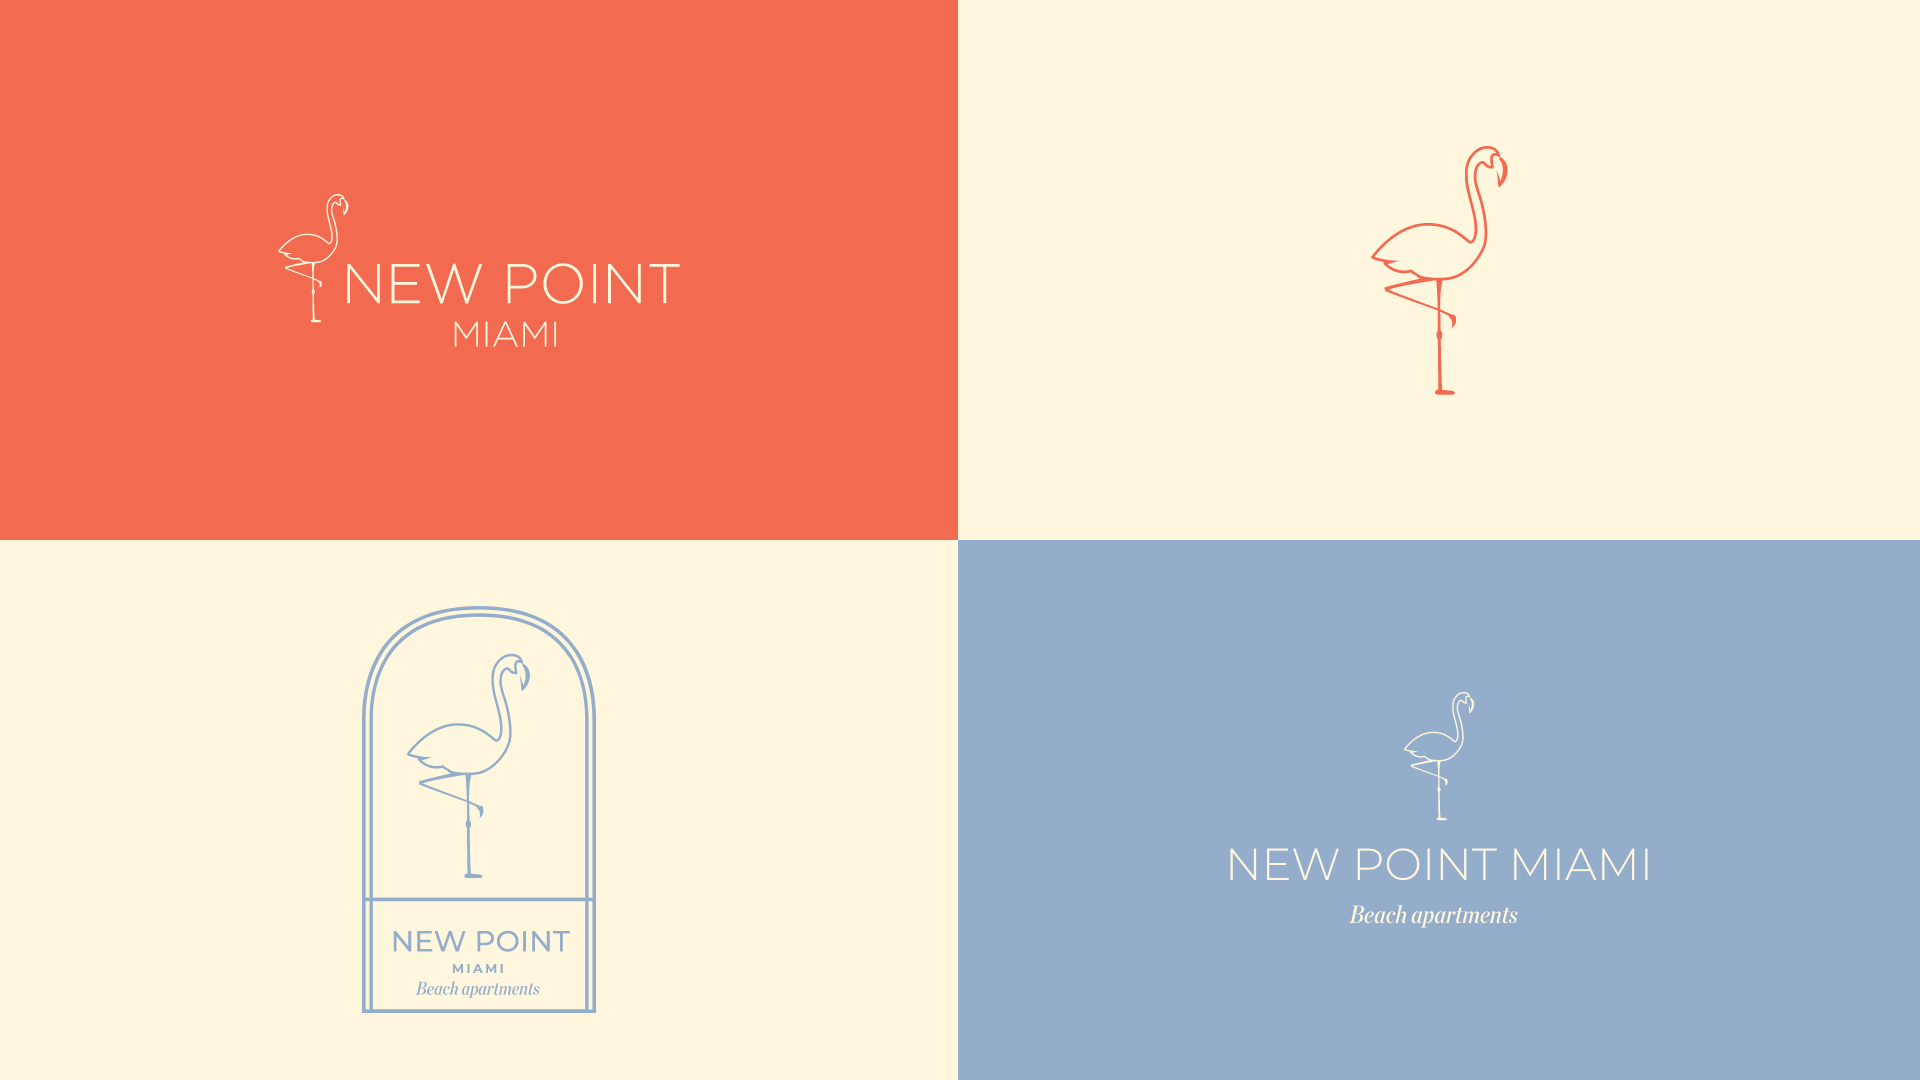 473.Agency - NewPoint Miami - Visual Identity - Logo and Symbol articulation